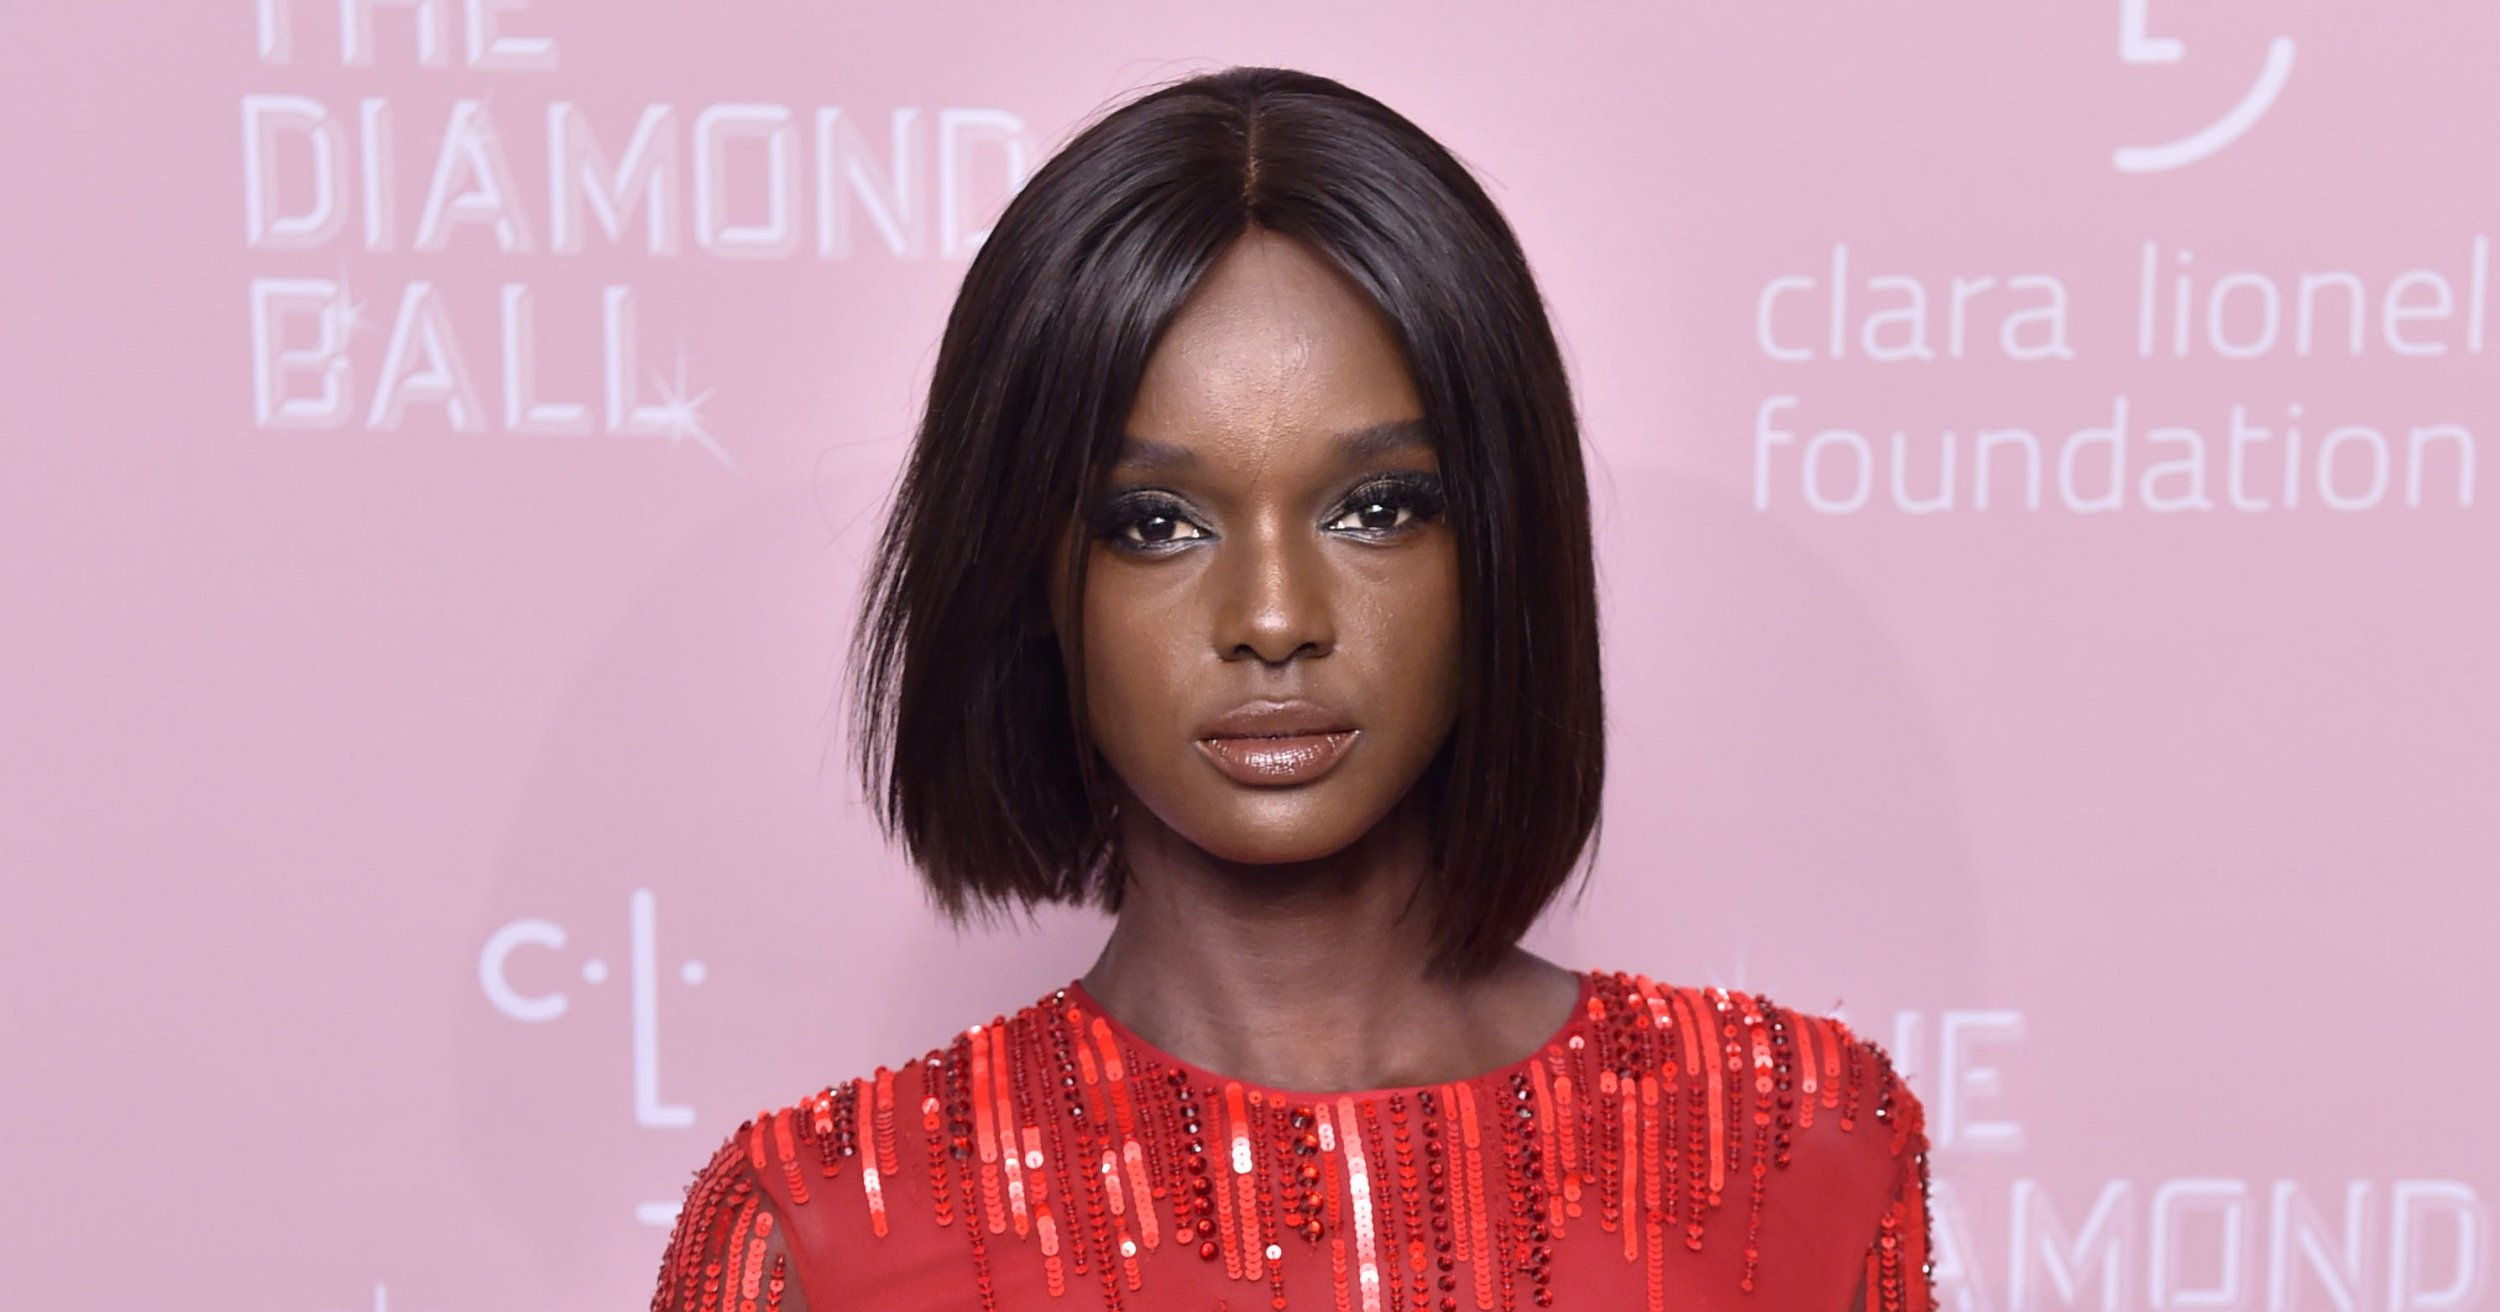 Mandatory Credit: Photo by Stephen Lovekin/Variety/REX (9881505cd) Duckie Thot 4th Annual Clara Lionel Foundation Diamond Ball, Arrivals, New York, USA - 13 Sep 2018 The Clara Lionel Foundation (CLF) was founded in 2012 by Robyn 'Rihanna' Fenty in honor of her grandparents, Clara and Lionel Braithwaite. CLF supports and funds groundbreaking and effective education, health and emergency response programs around the world.